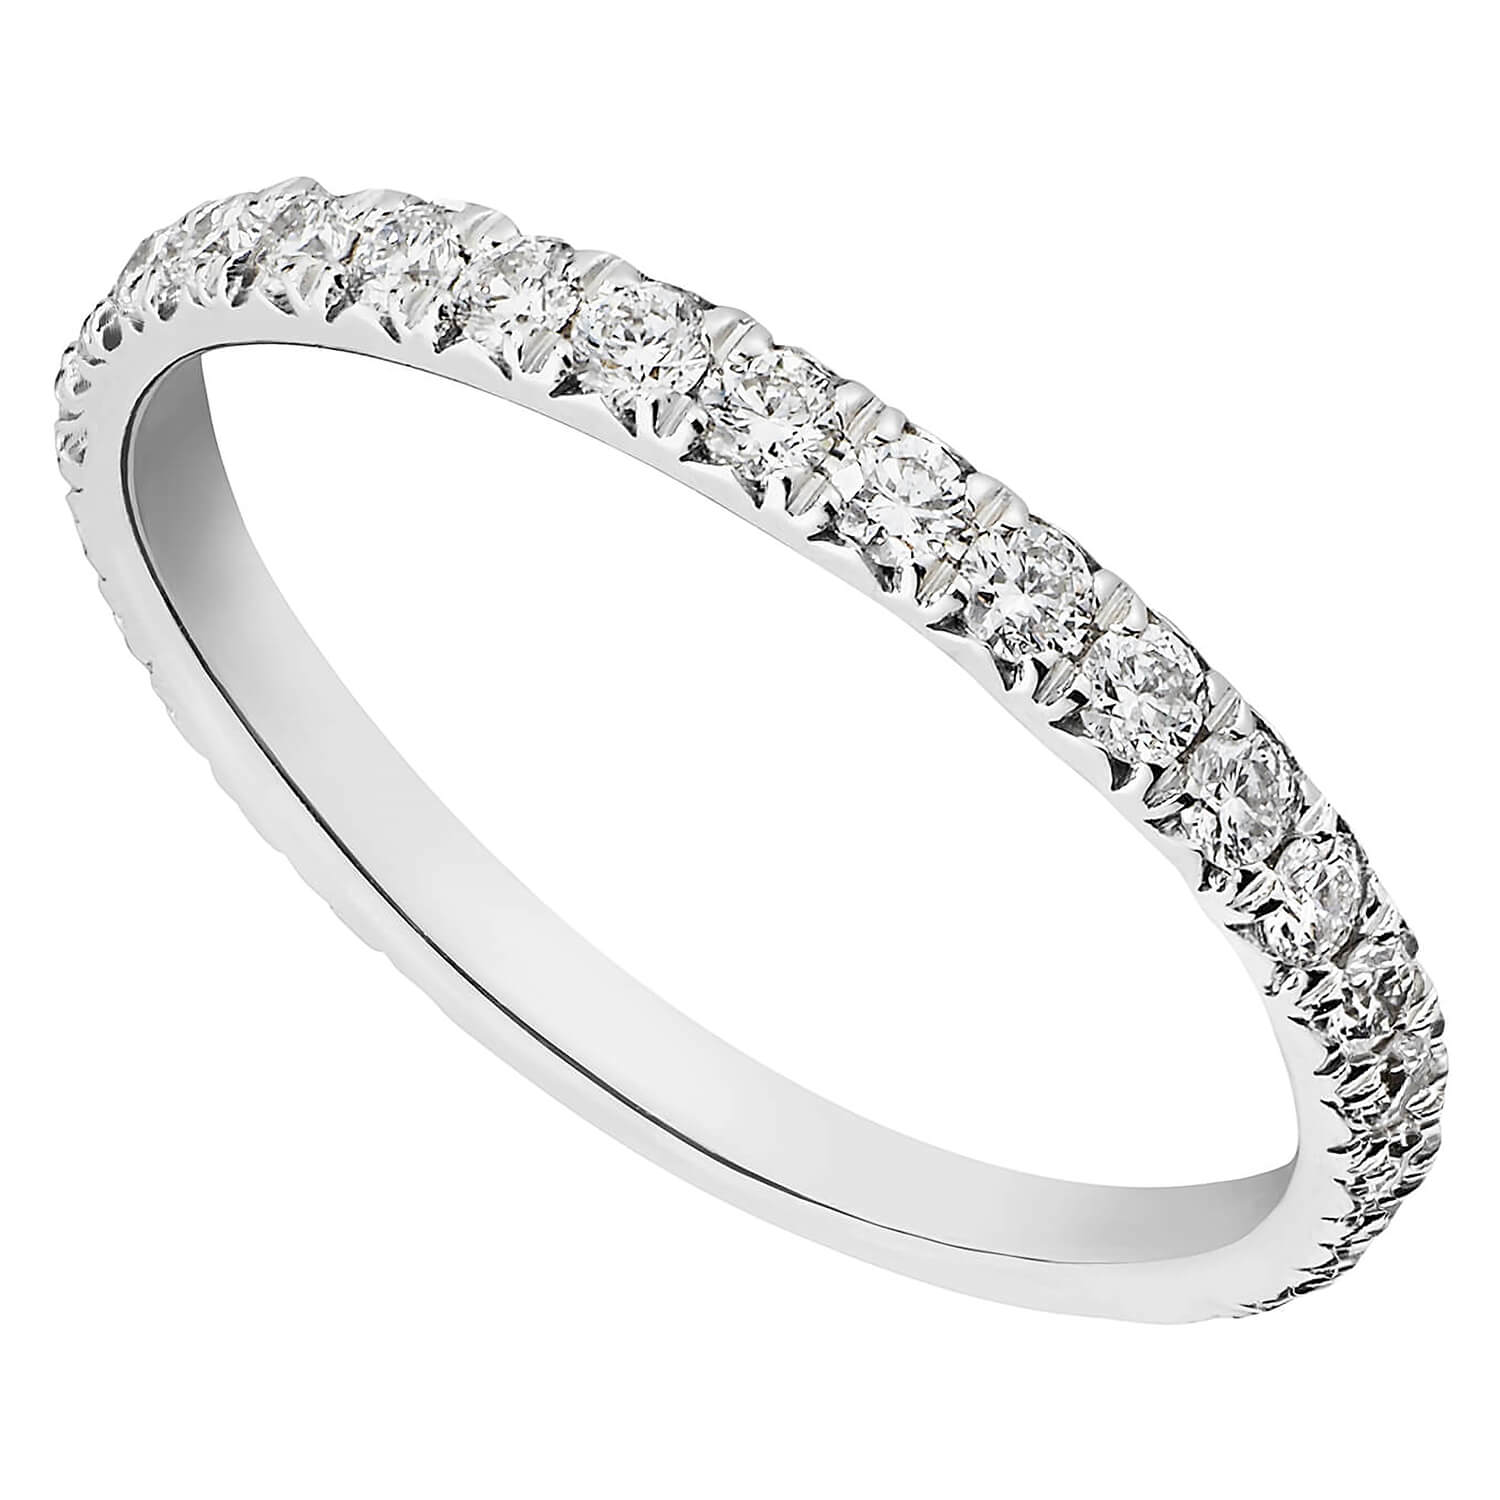 Platinum 0.50 carat diamond eternity ring